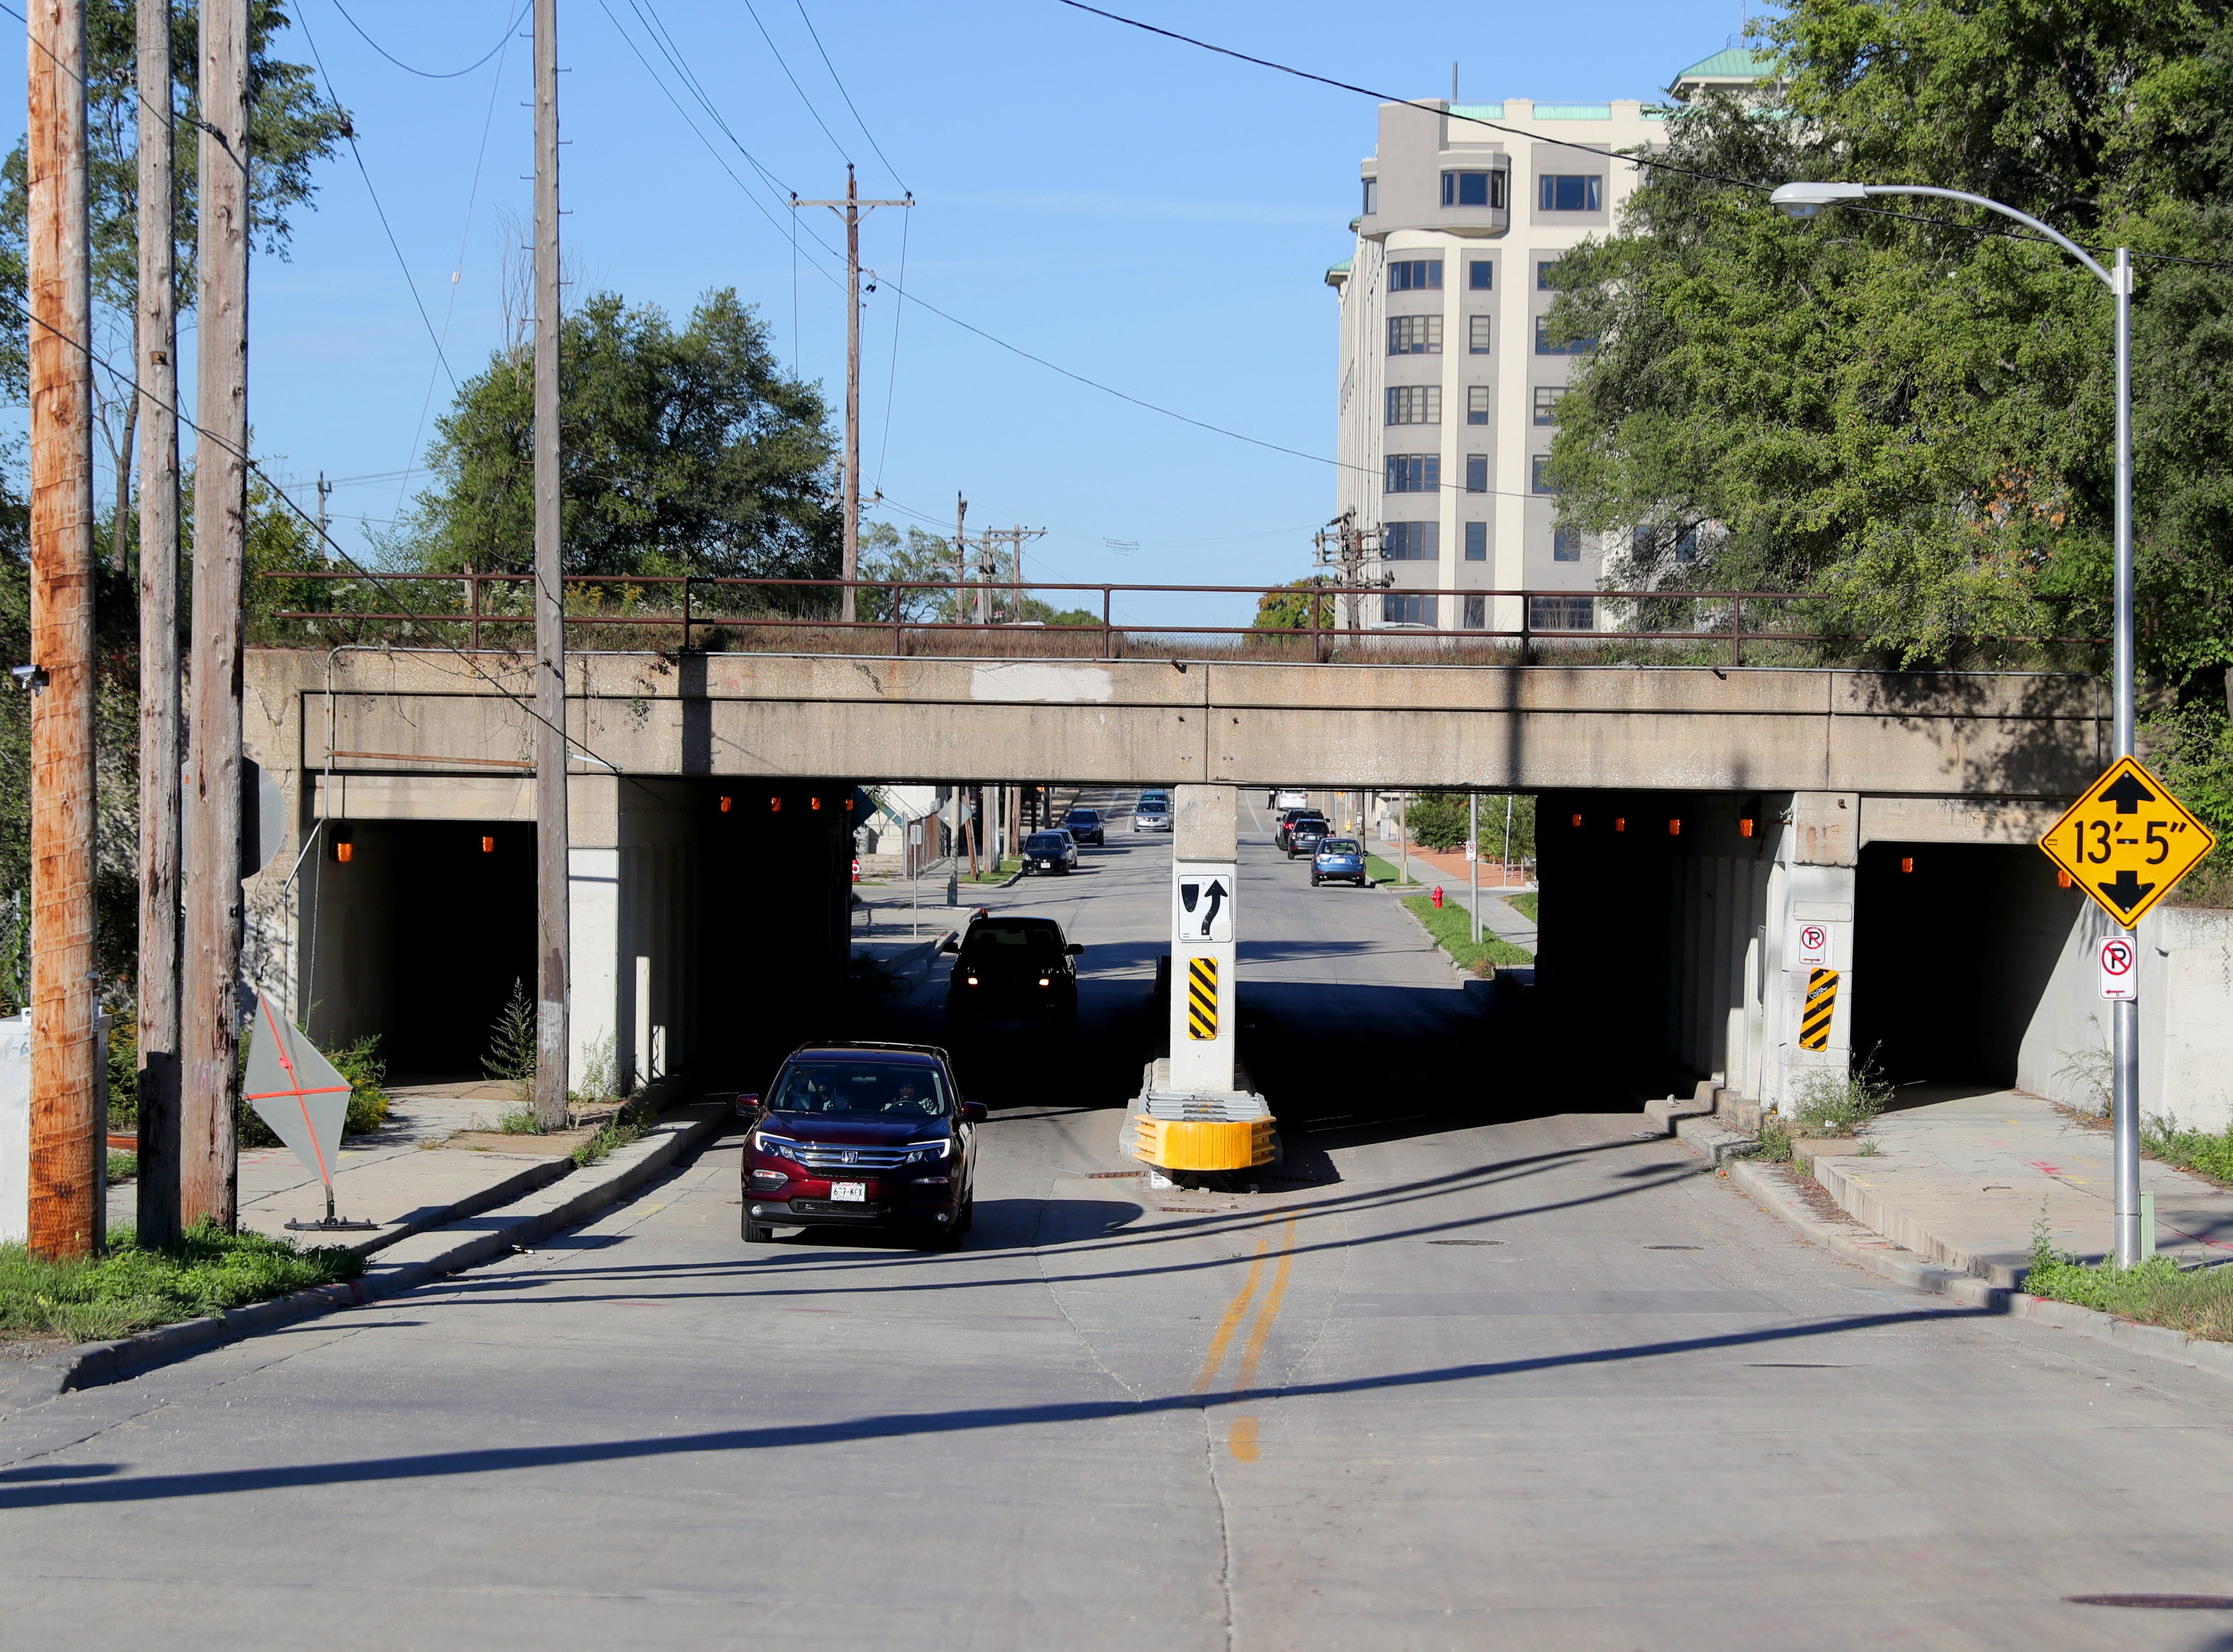 East Greenfield Avenue will have to be lowered under a railroad overpass to allow trucks and equipment to pass through.